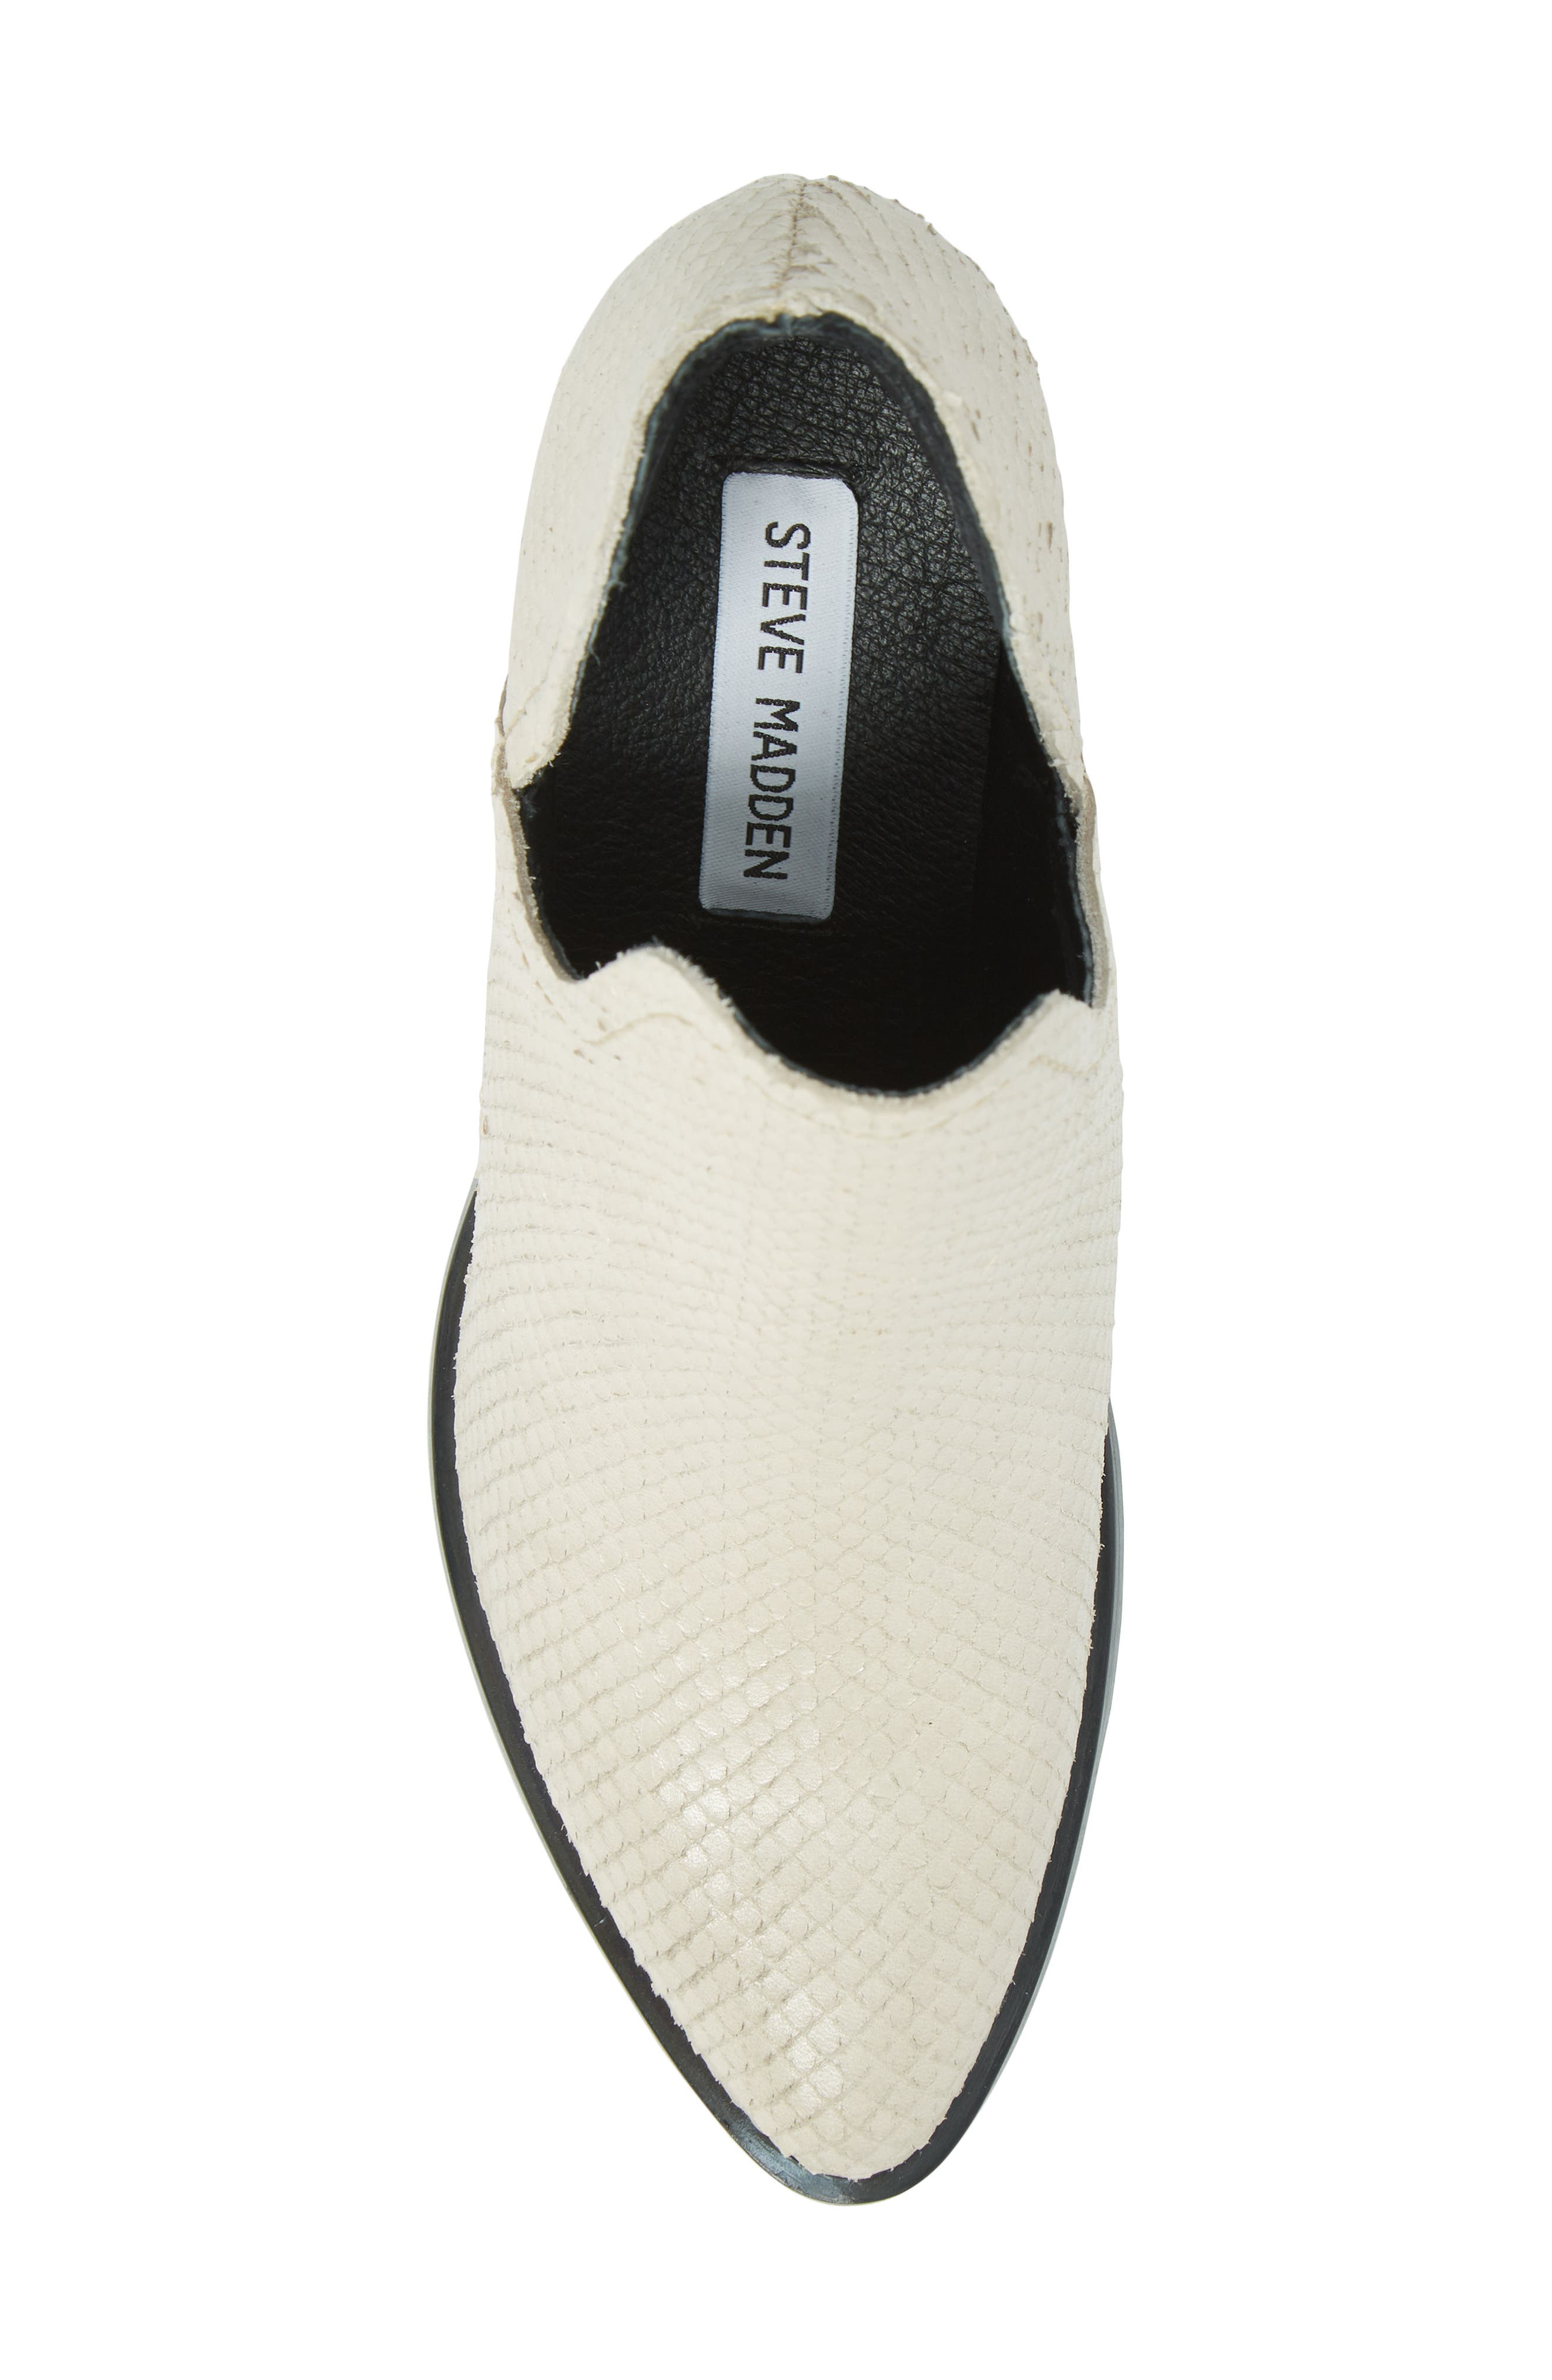 Petra Open Side Bootie,                             Alternate thumbnail 5, color,                             White Snake Print